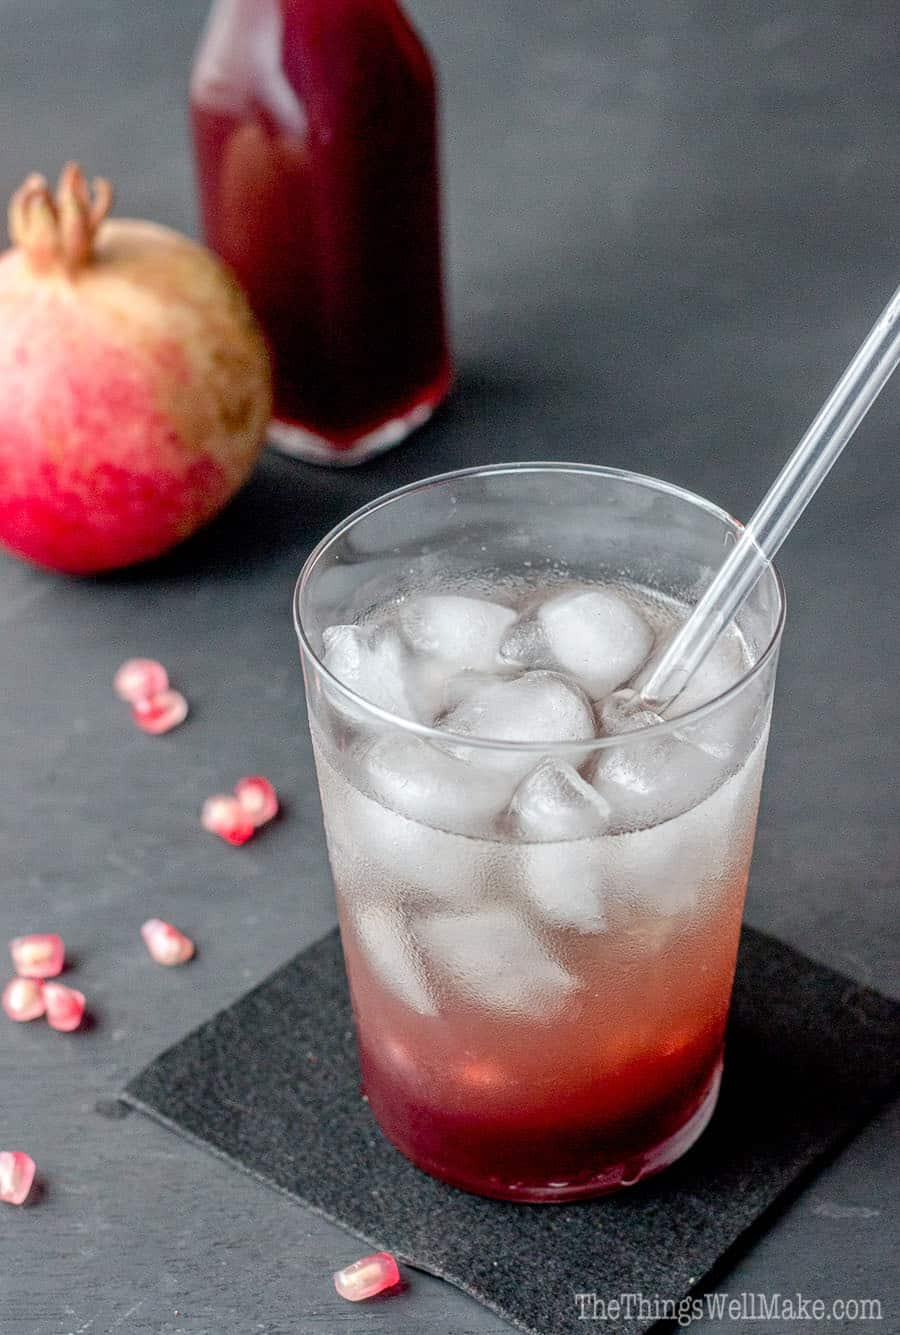 photo of a Shirley Temple cocktail made with homemade grenadine